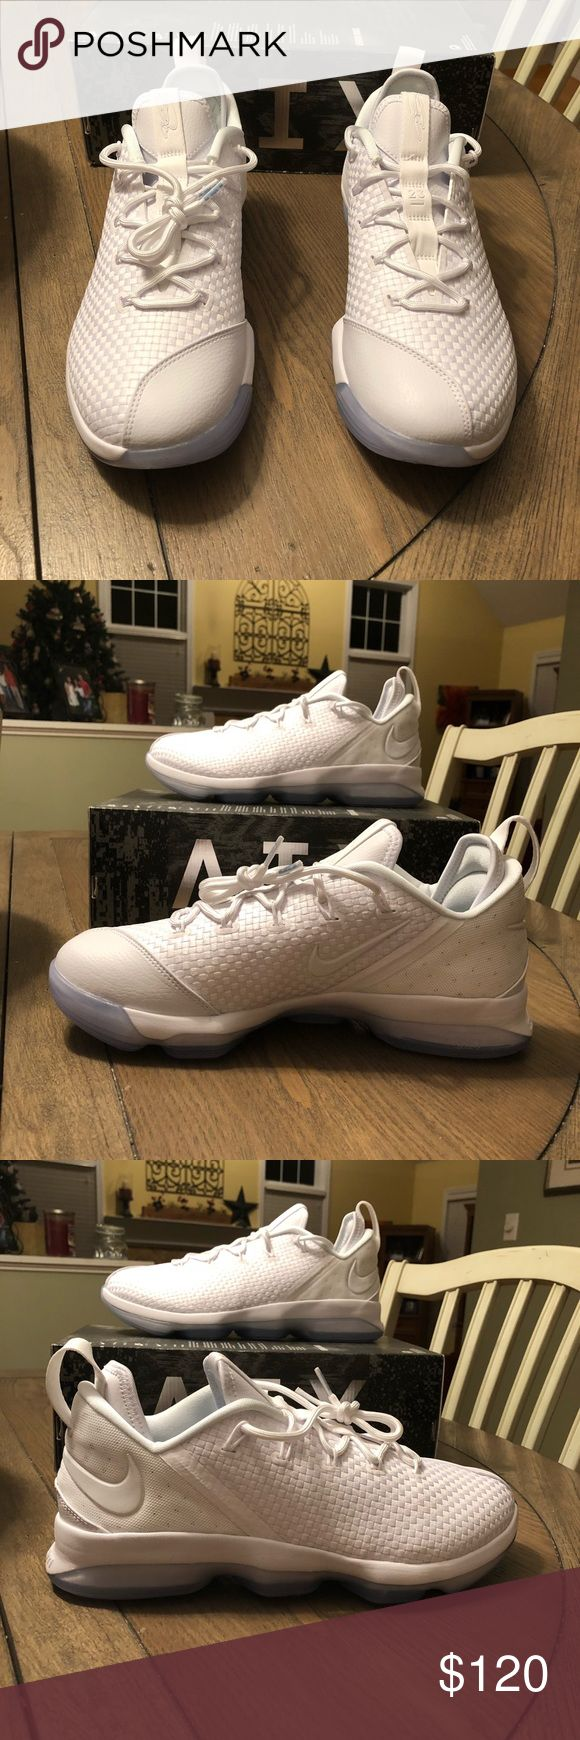 Lebron XIV Low Lebron XIV Low White/White-Ice 878636-101 Size 10 Brand New in Original Box (no top) Retails for $150.00 Nike Shoes Sneakers